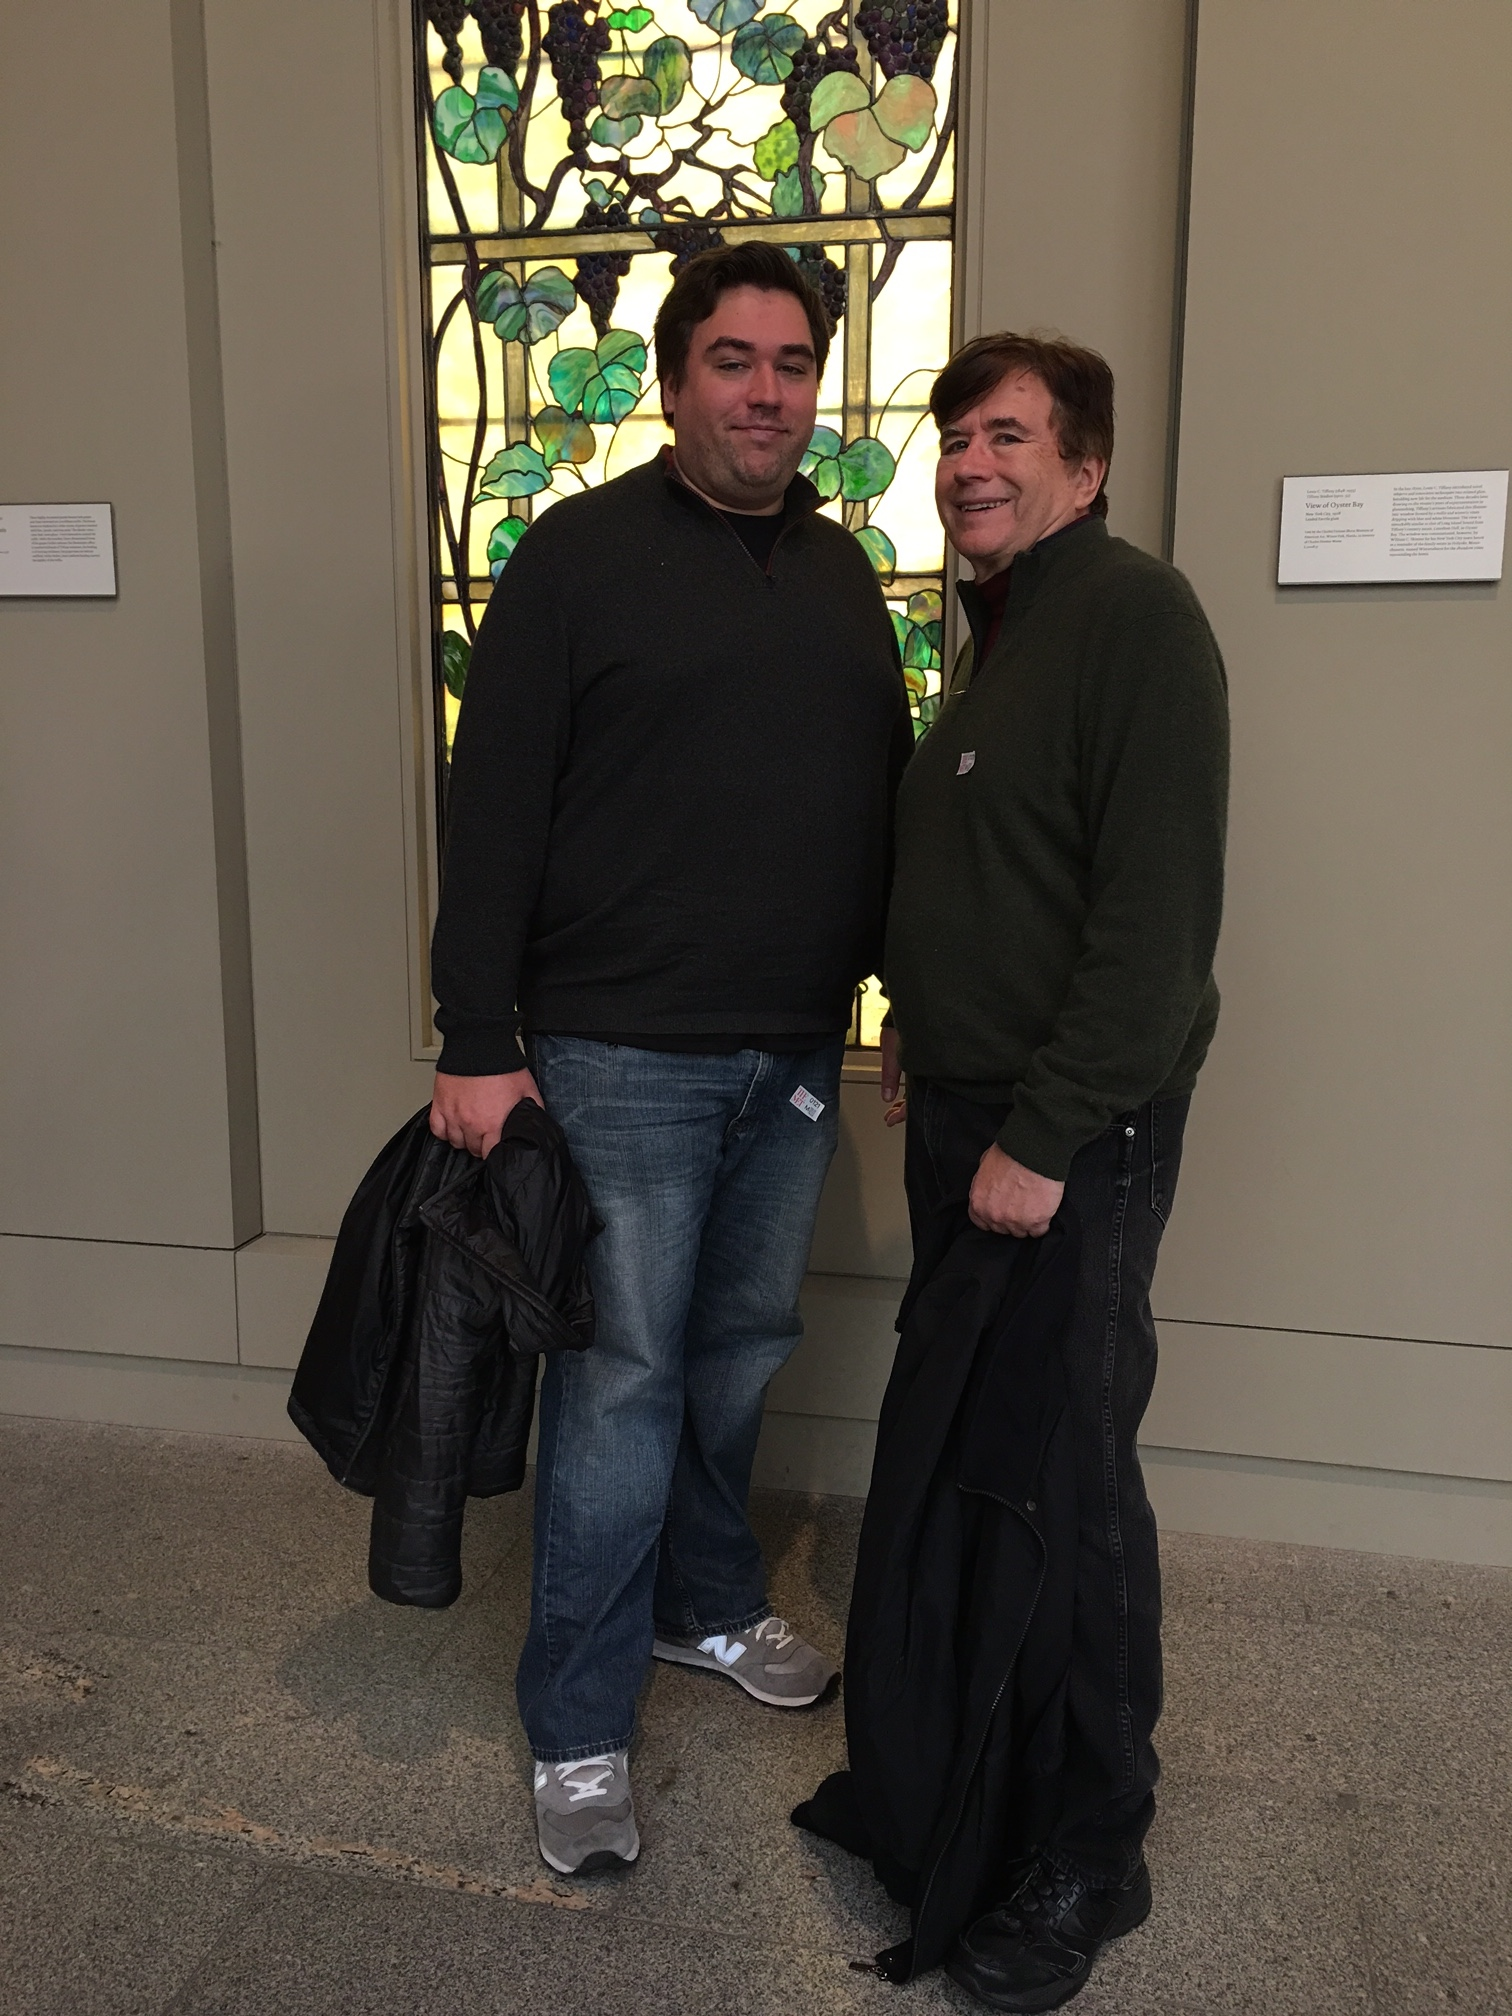 Greg & John in their Xmas cashmere sweaters at the Met, Jan. 2018